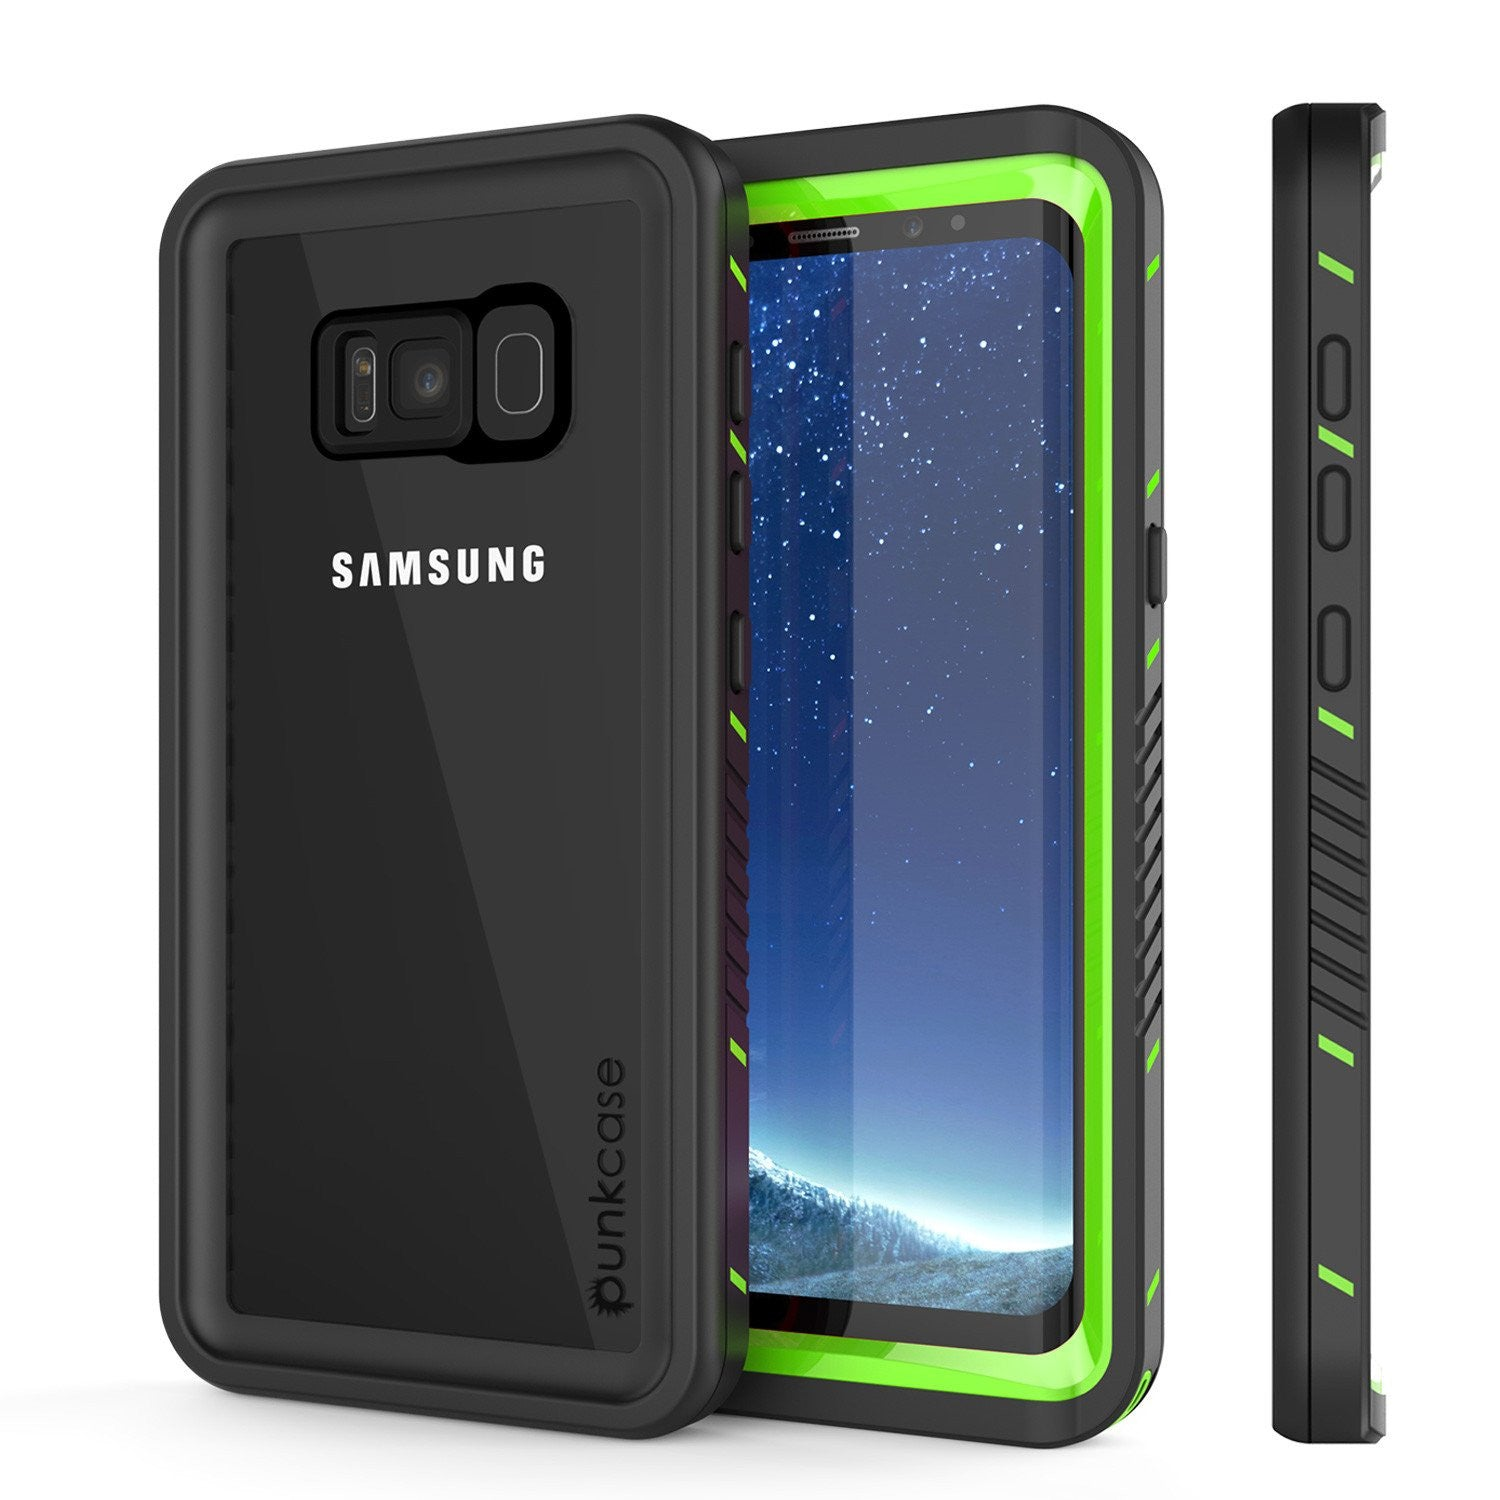 Galaxy S8 Waterproof Case, Punkcase [Extreme Series] [Slim Fit] [IP68 Certified] [Shockproof] [Snowproof] [Dirproof] Armor Cover W/ Built In Screen Protector for Samsung Galaxy S8 [Green]